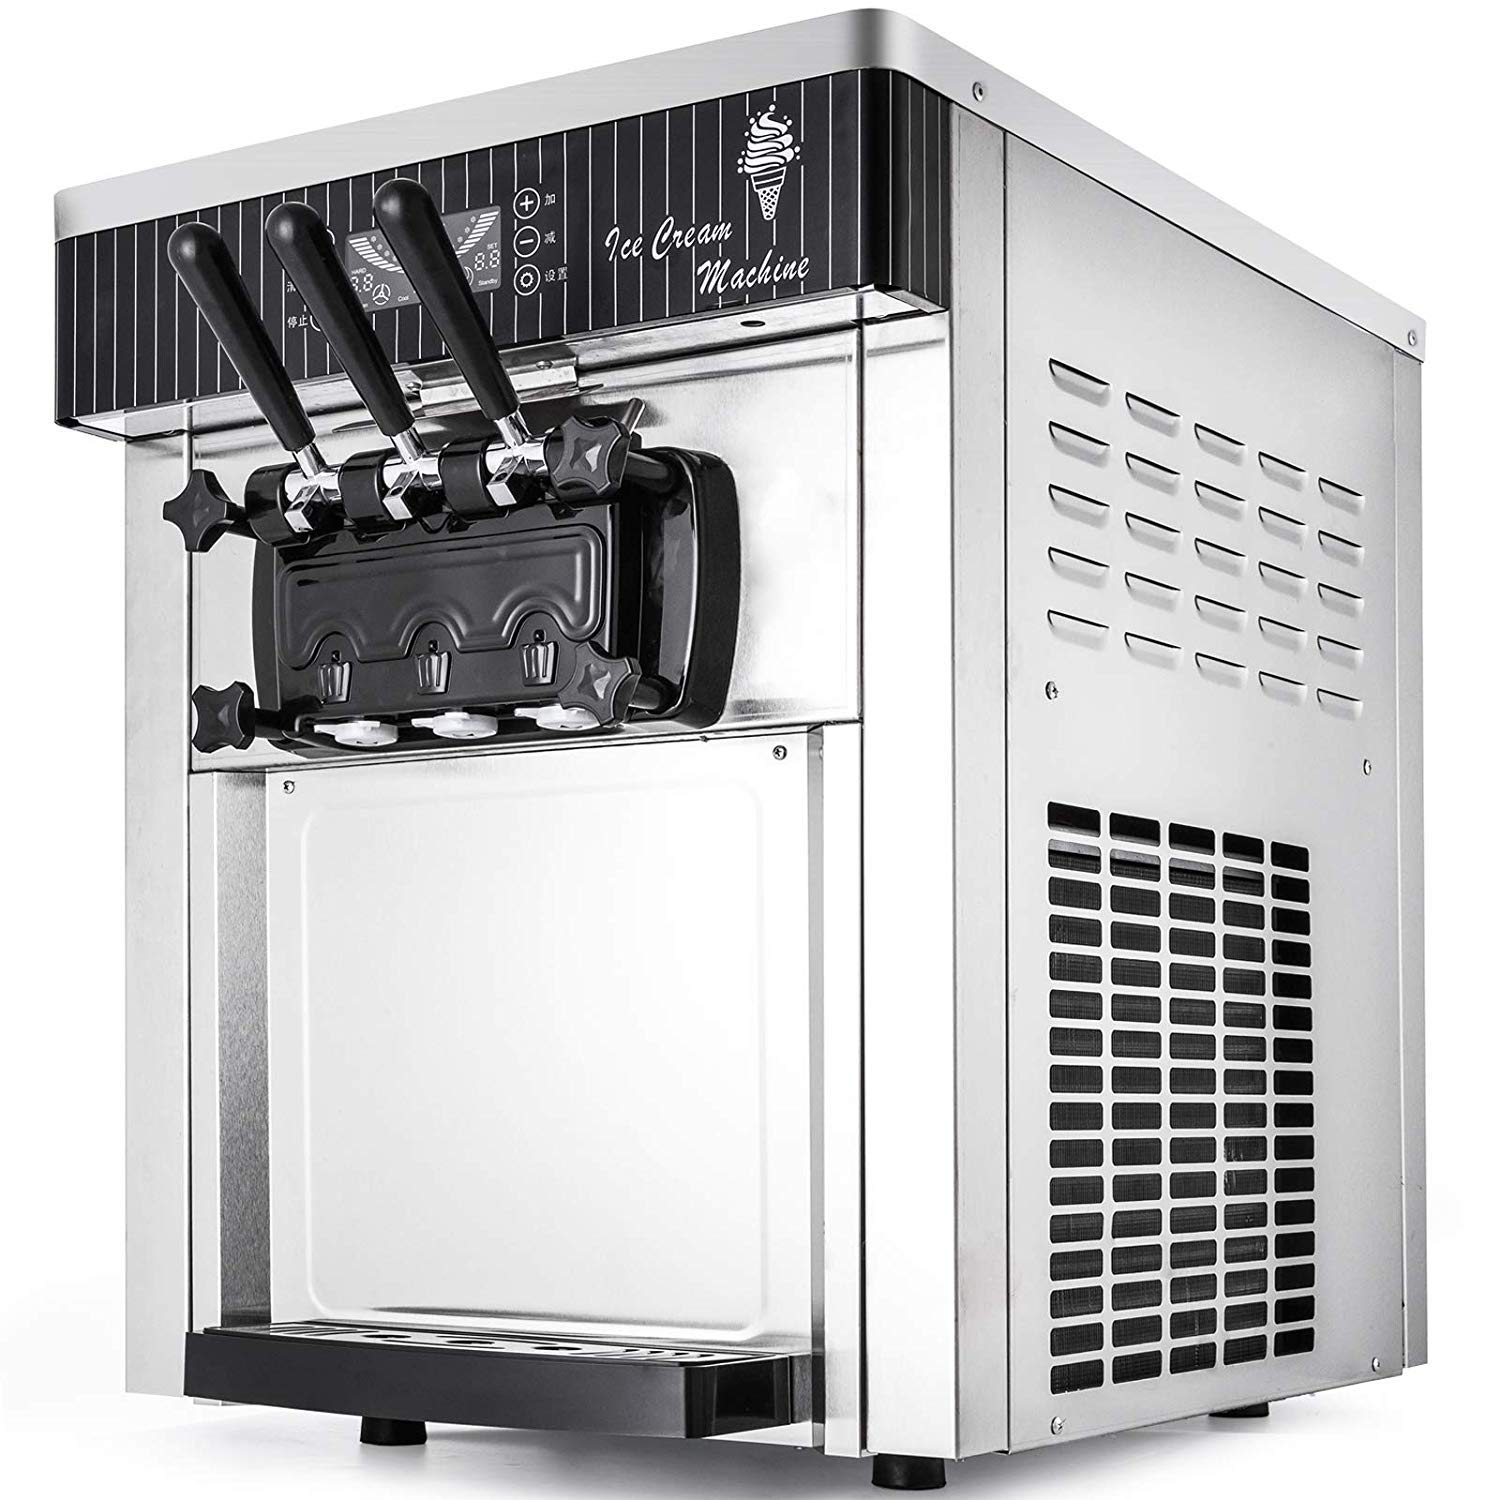 Happybuy 2200W Soft Ice Cream Machine Commercial 5.3-7.4Gallons//H Ice Cream Machine AUTO Clean Function with LCD display Desktop Suitable for Restaurants Bars Cafes Bakeries